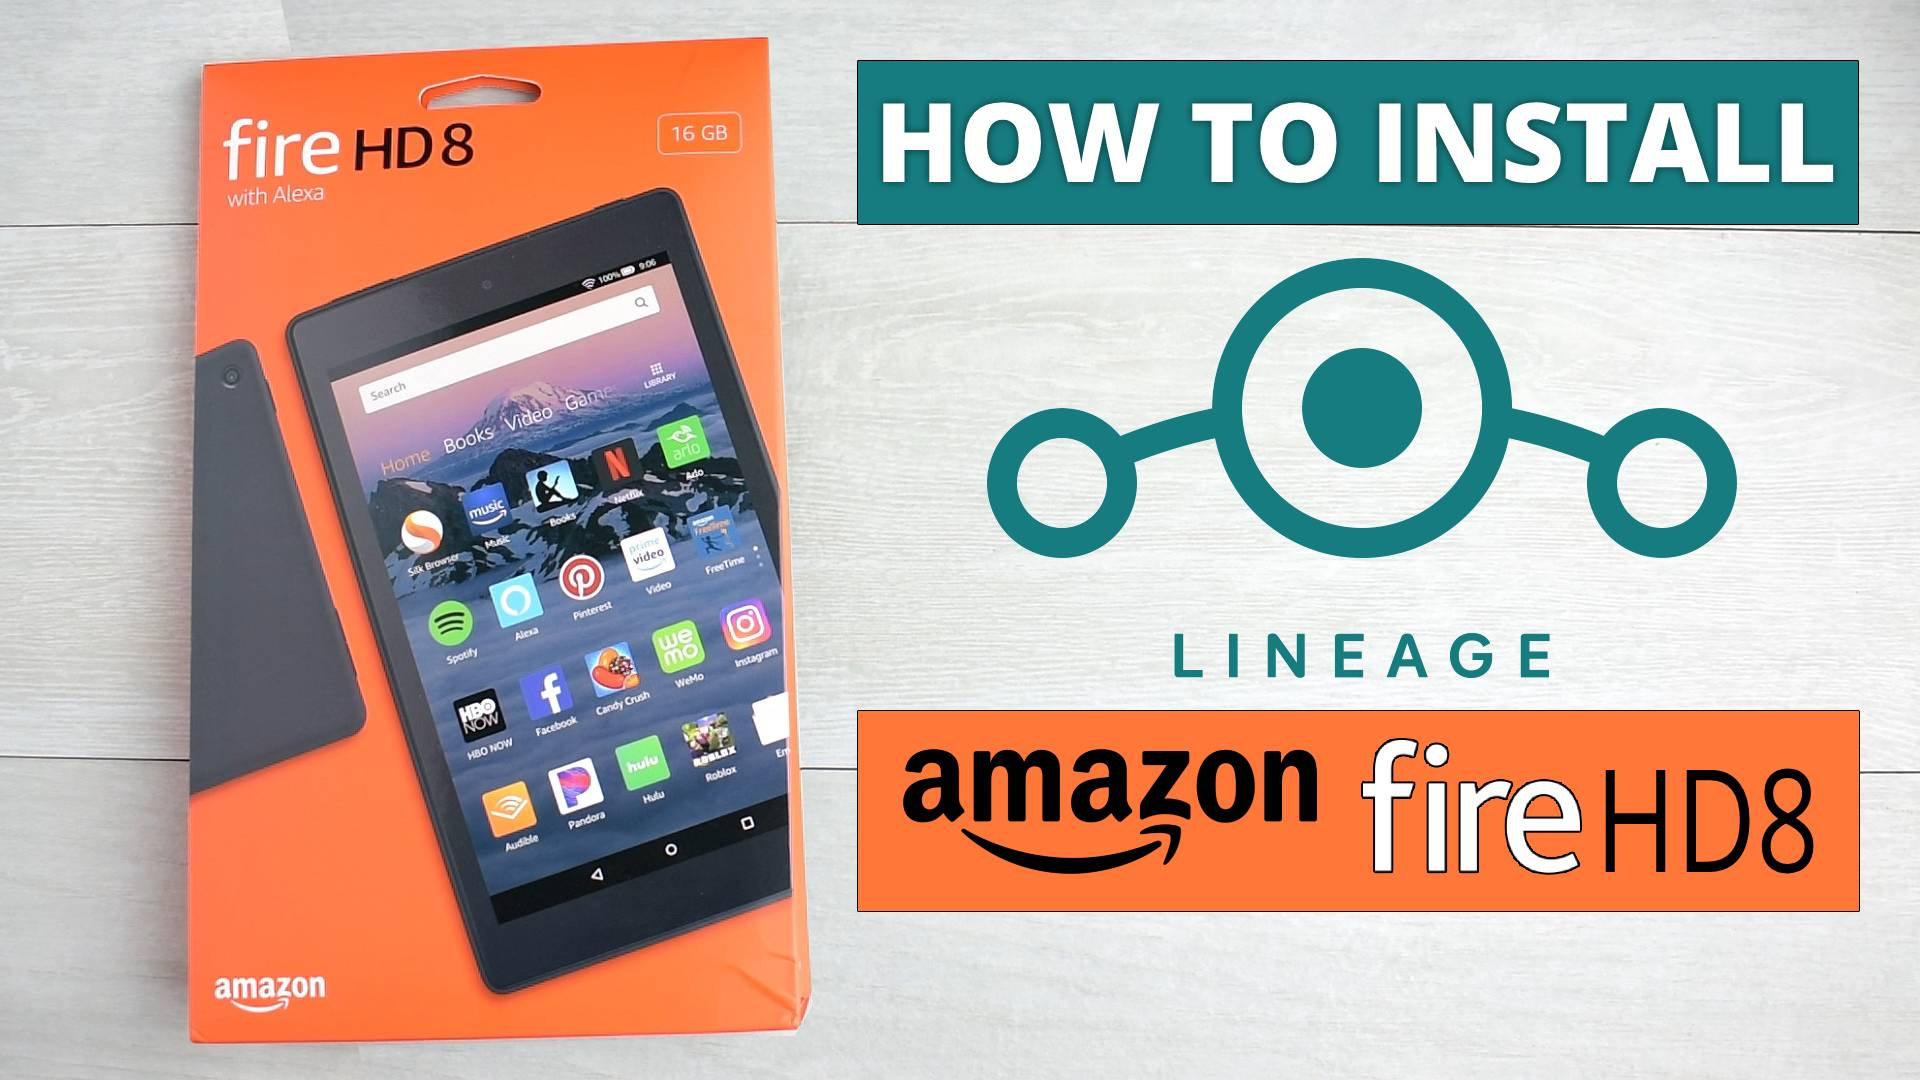 How To Install Lineage OS On Amazon Fire HD 8 Tablet